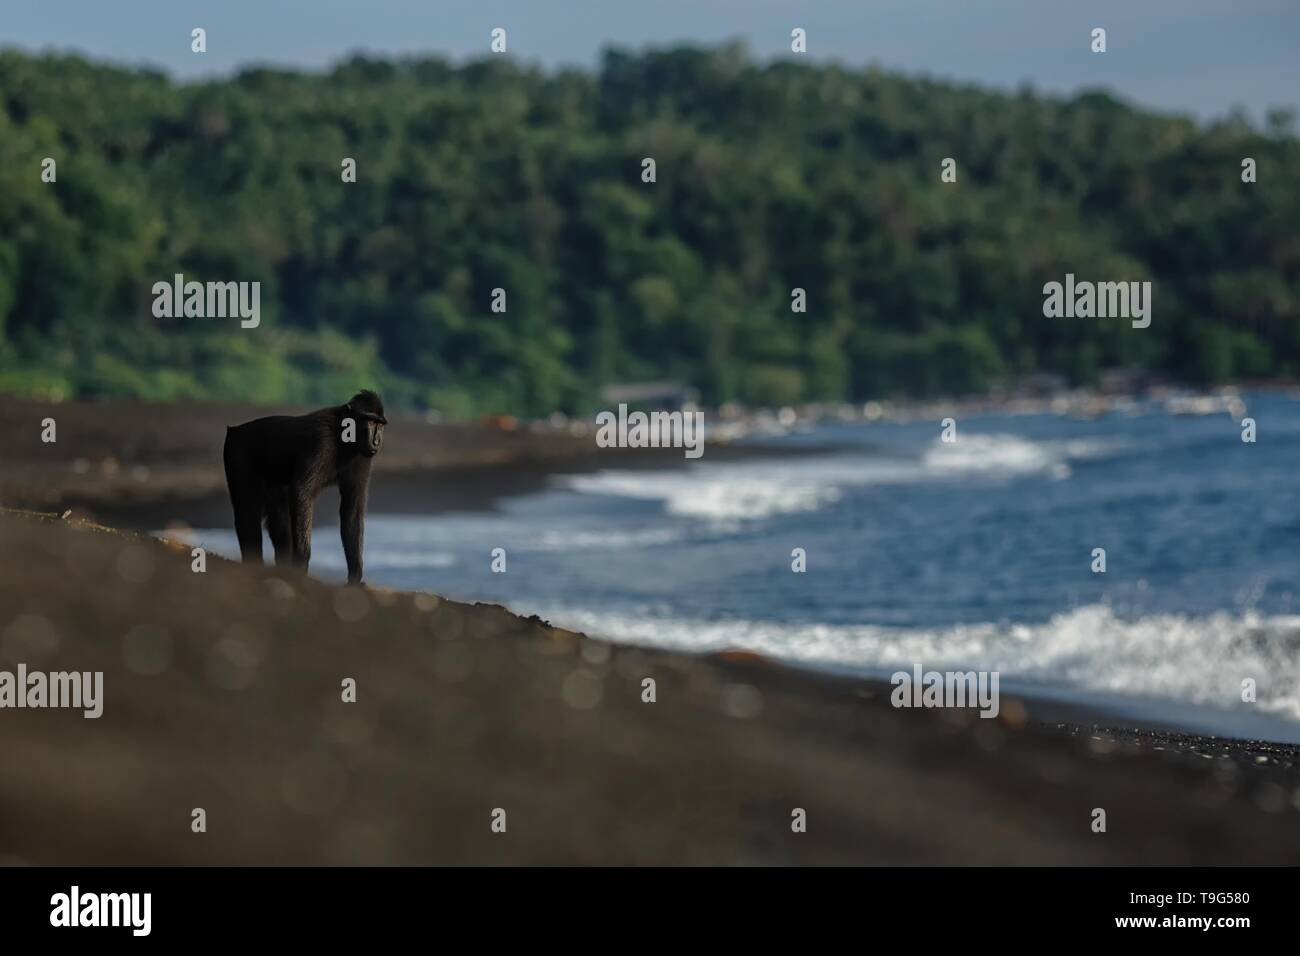 Crested macaque standing on the on beach with blue lagoon and jungle in background. Endemic black crested macaque. Natural habitat. Unique mammals in  - Stock Image